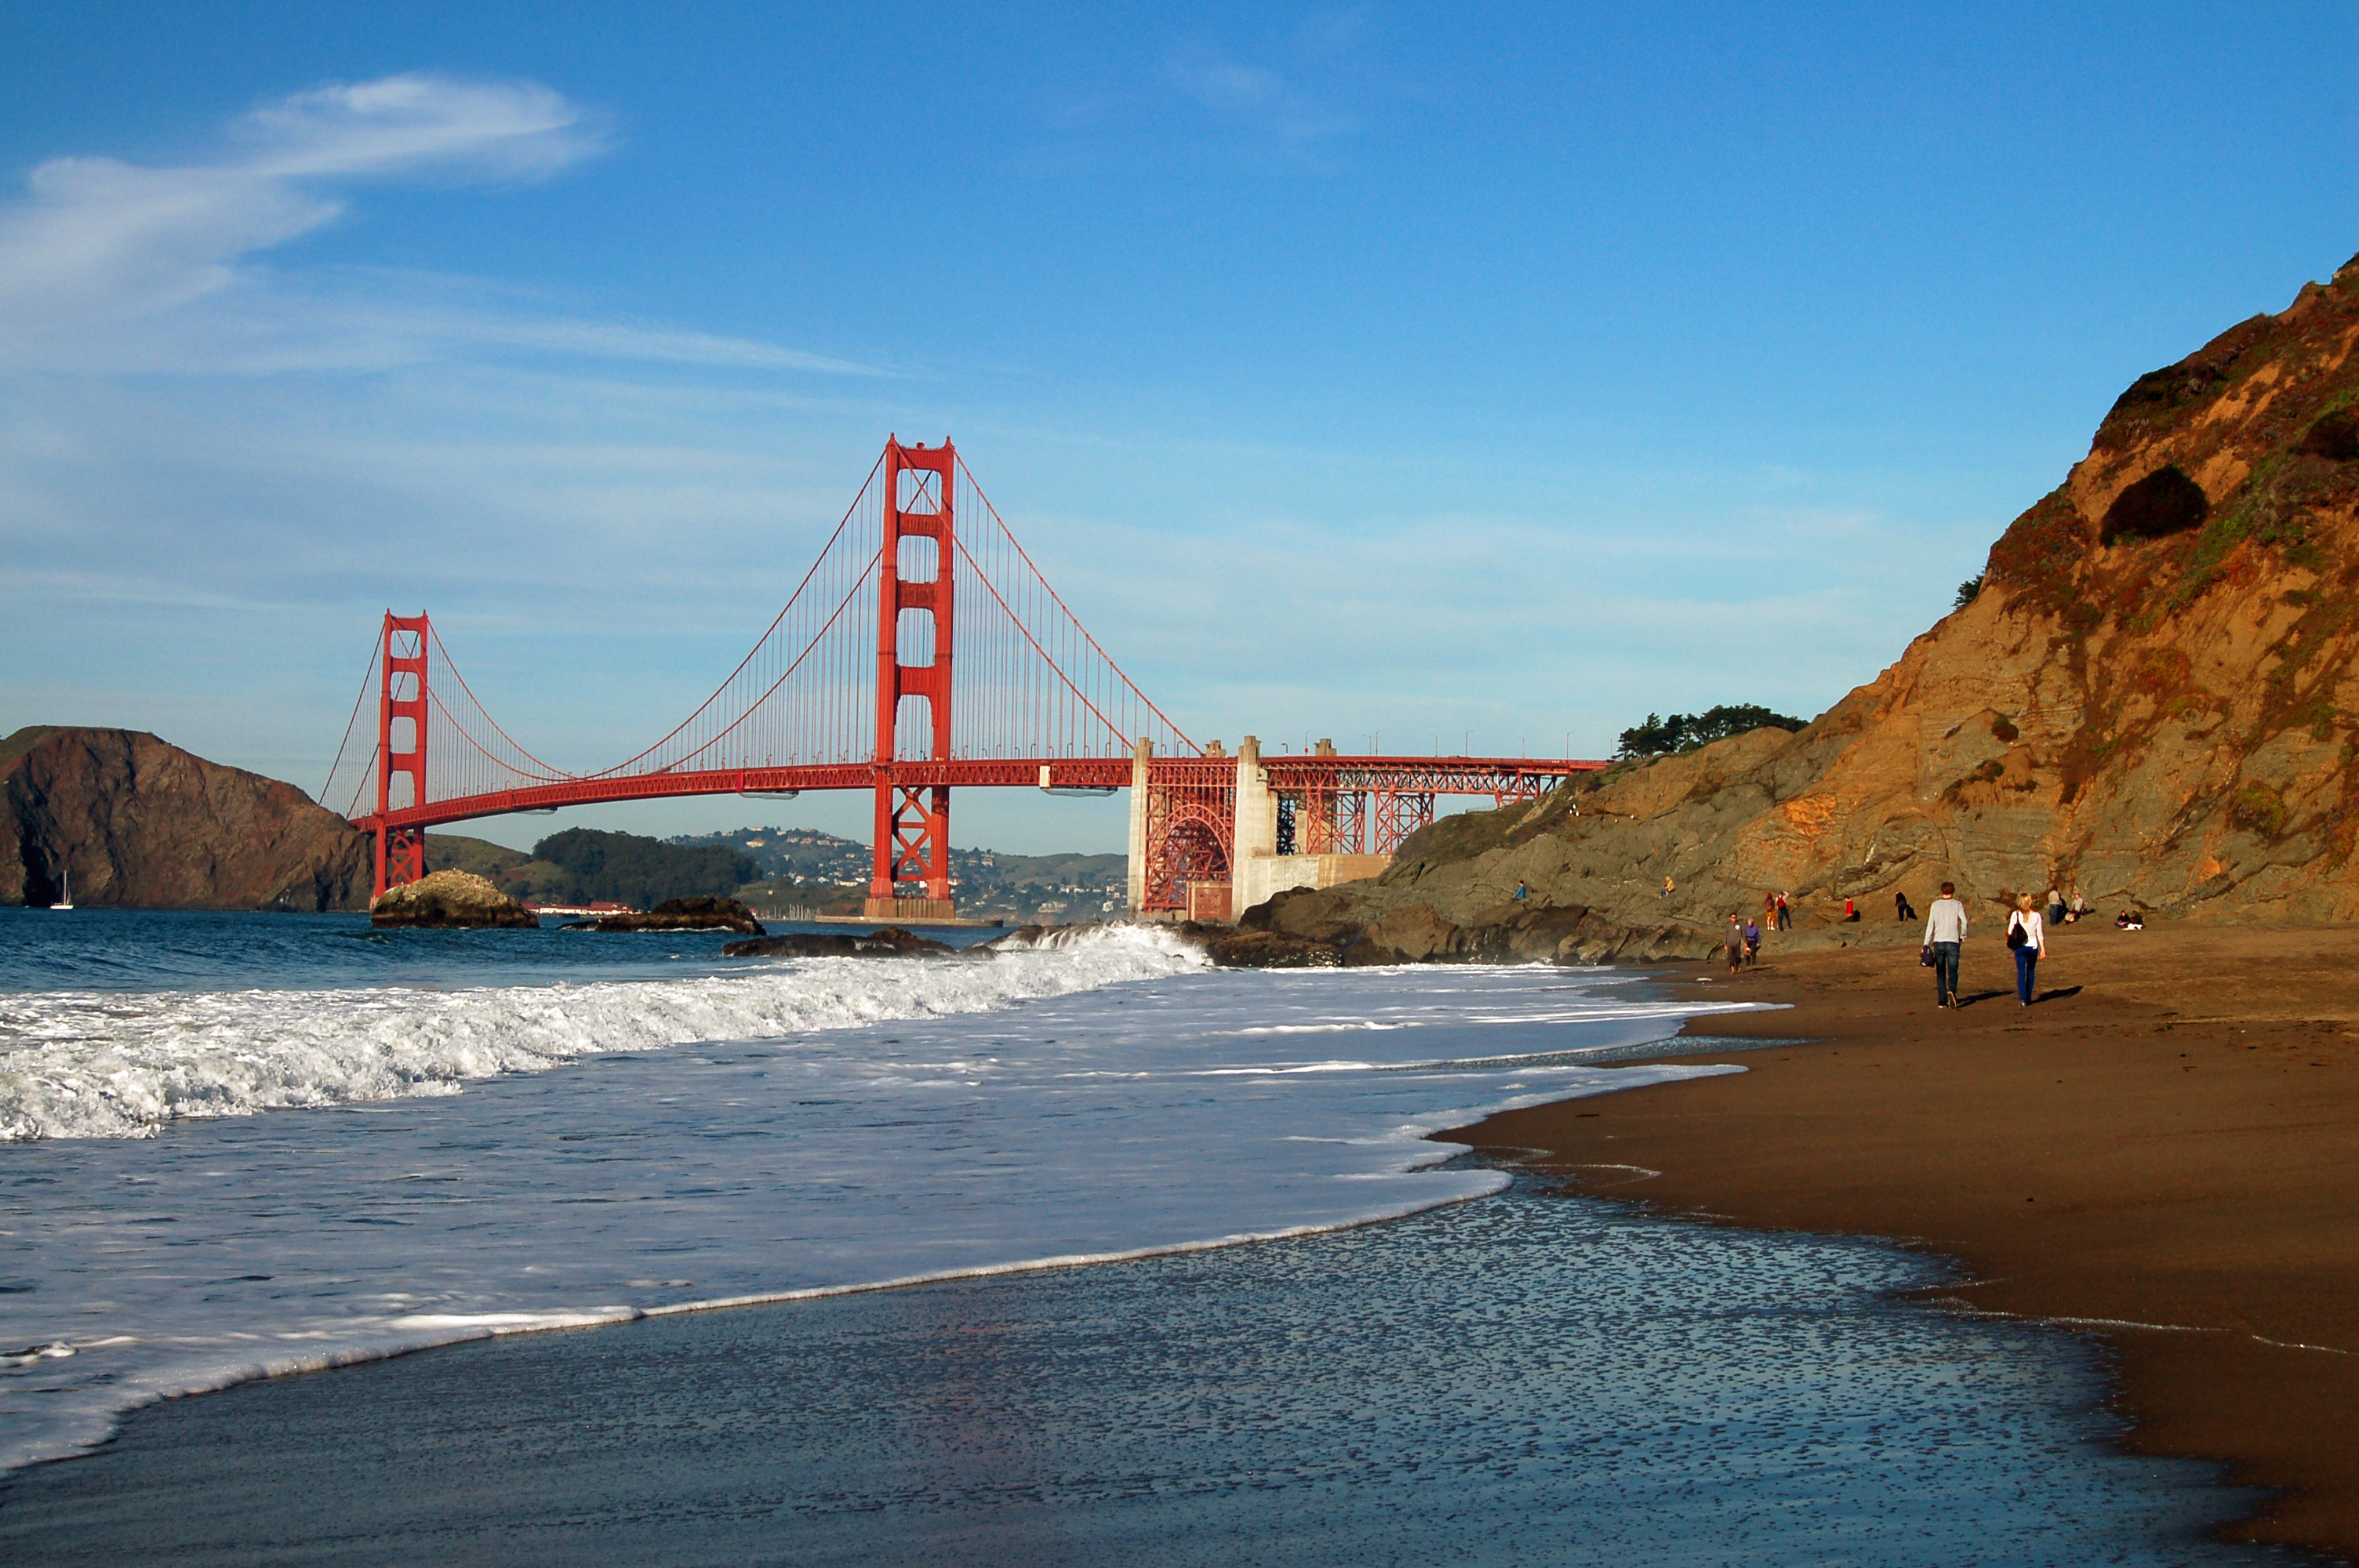 Baker beach in the Presidio, San Francisco.